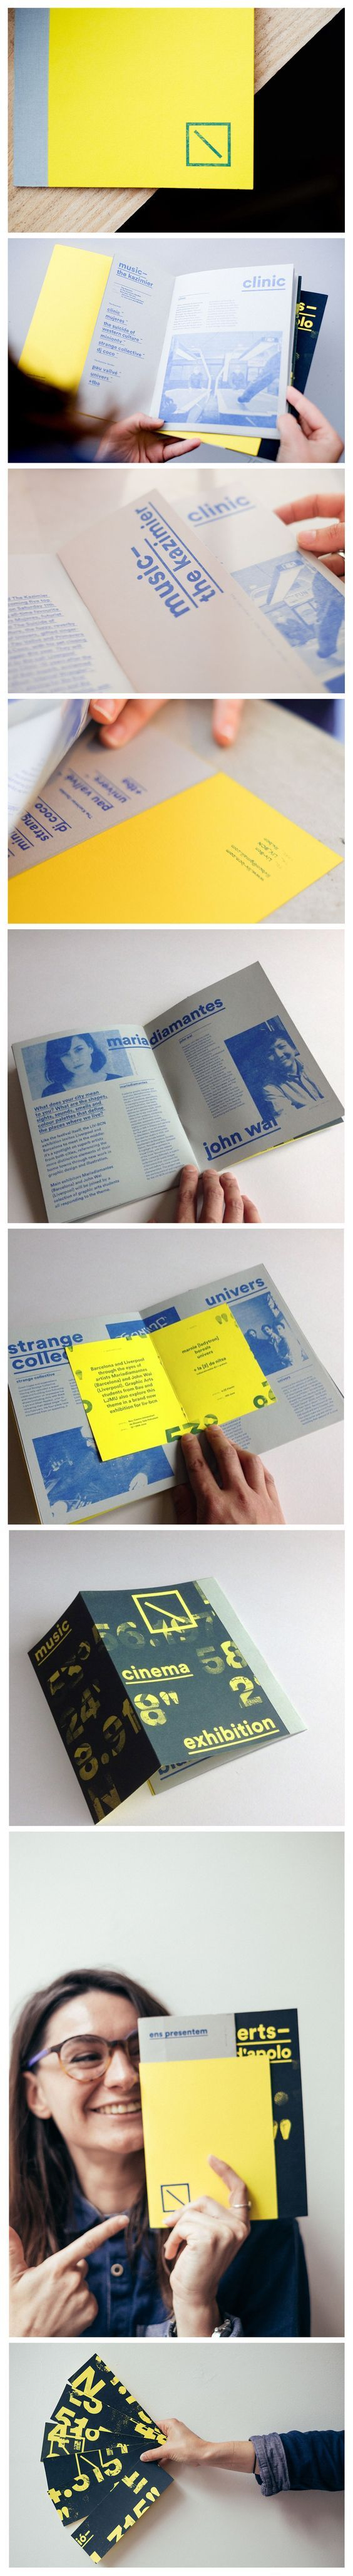 Art Director of LIV-BCN 2015 branding. Screen print, risograph & digital press pack designed and printed by Isobel Seacombe and myself. Published: July 17, 2015 http://www.mr-graphic.co.uk/: